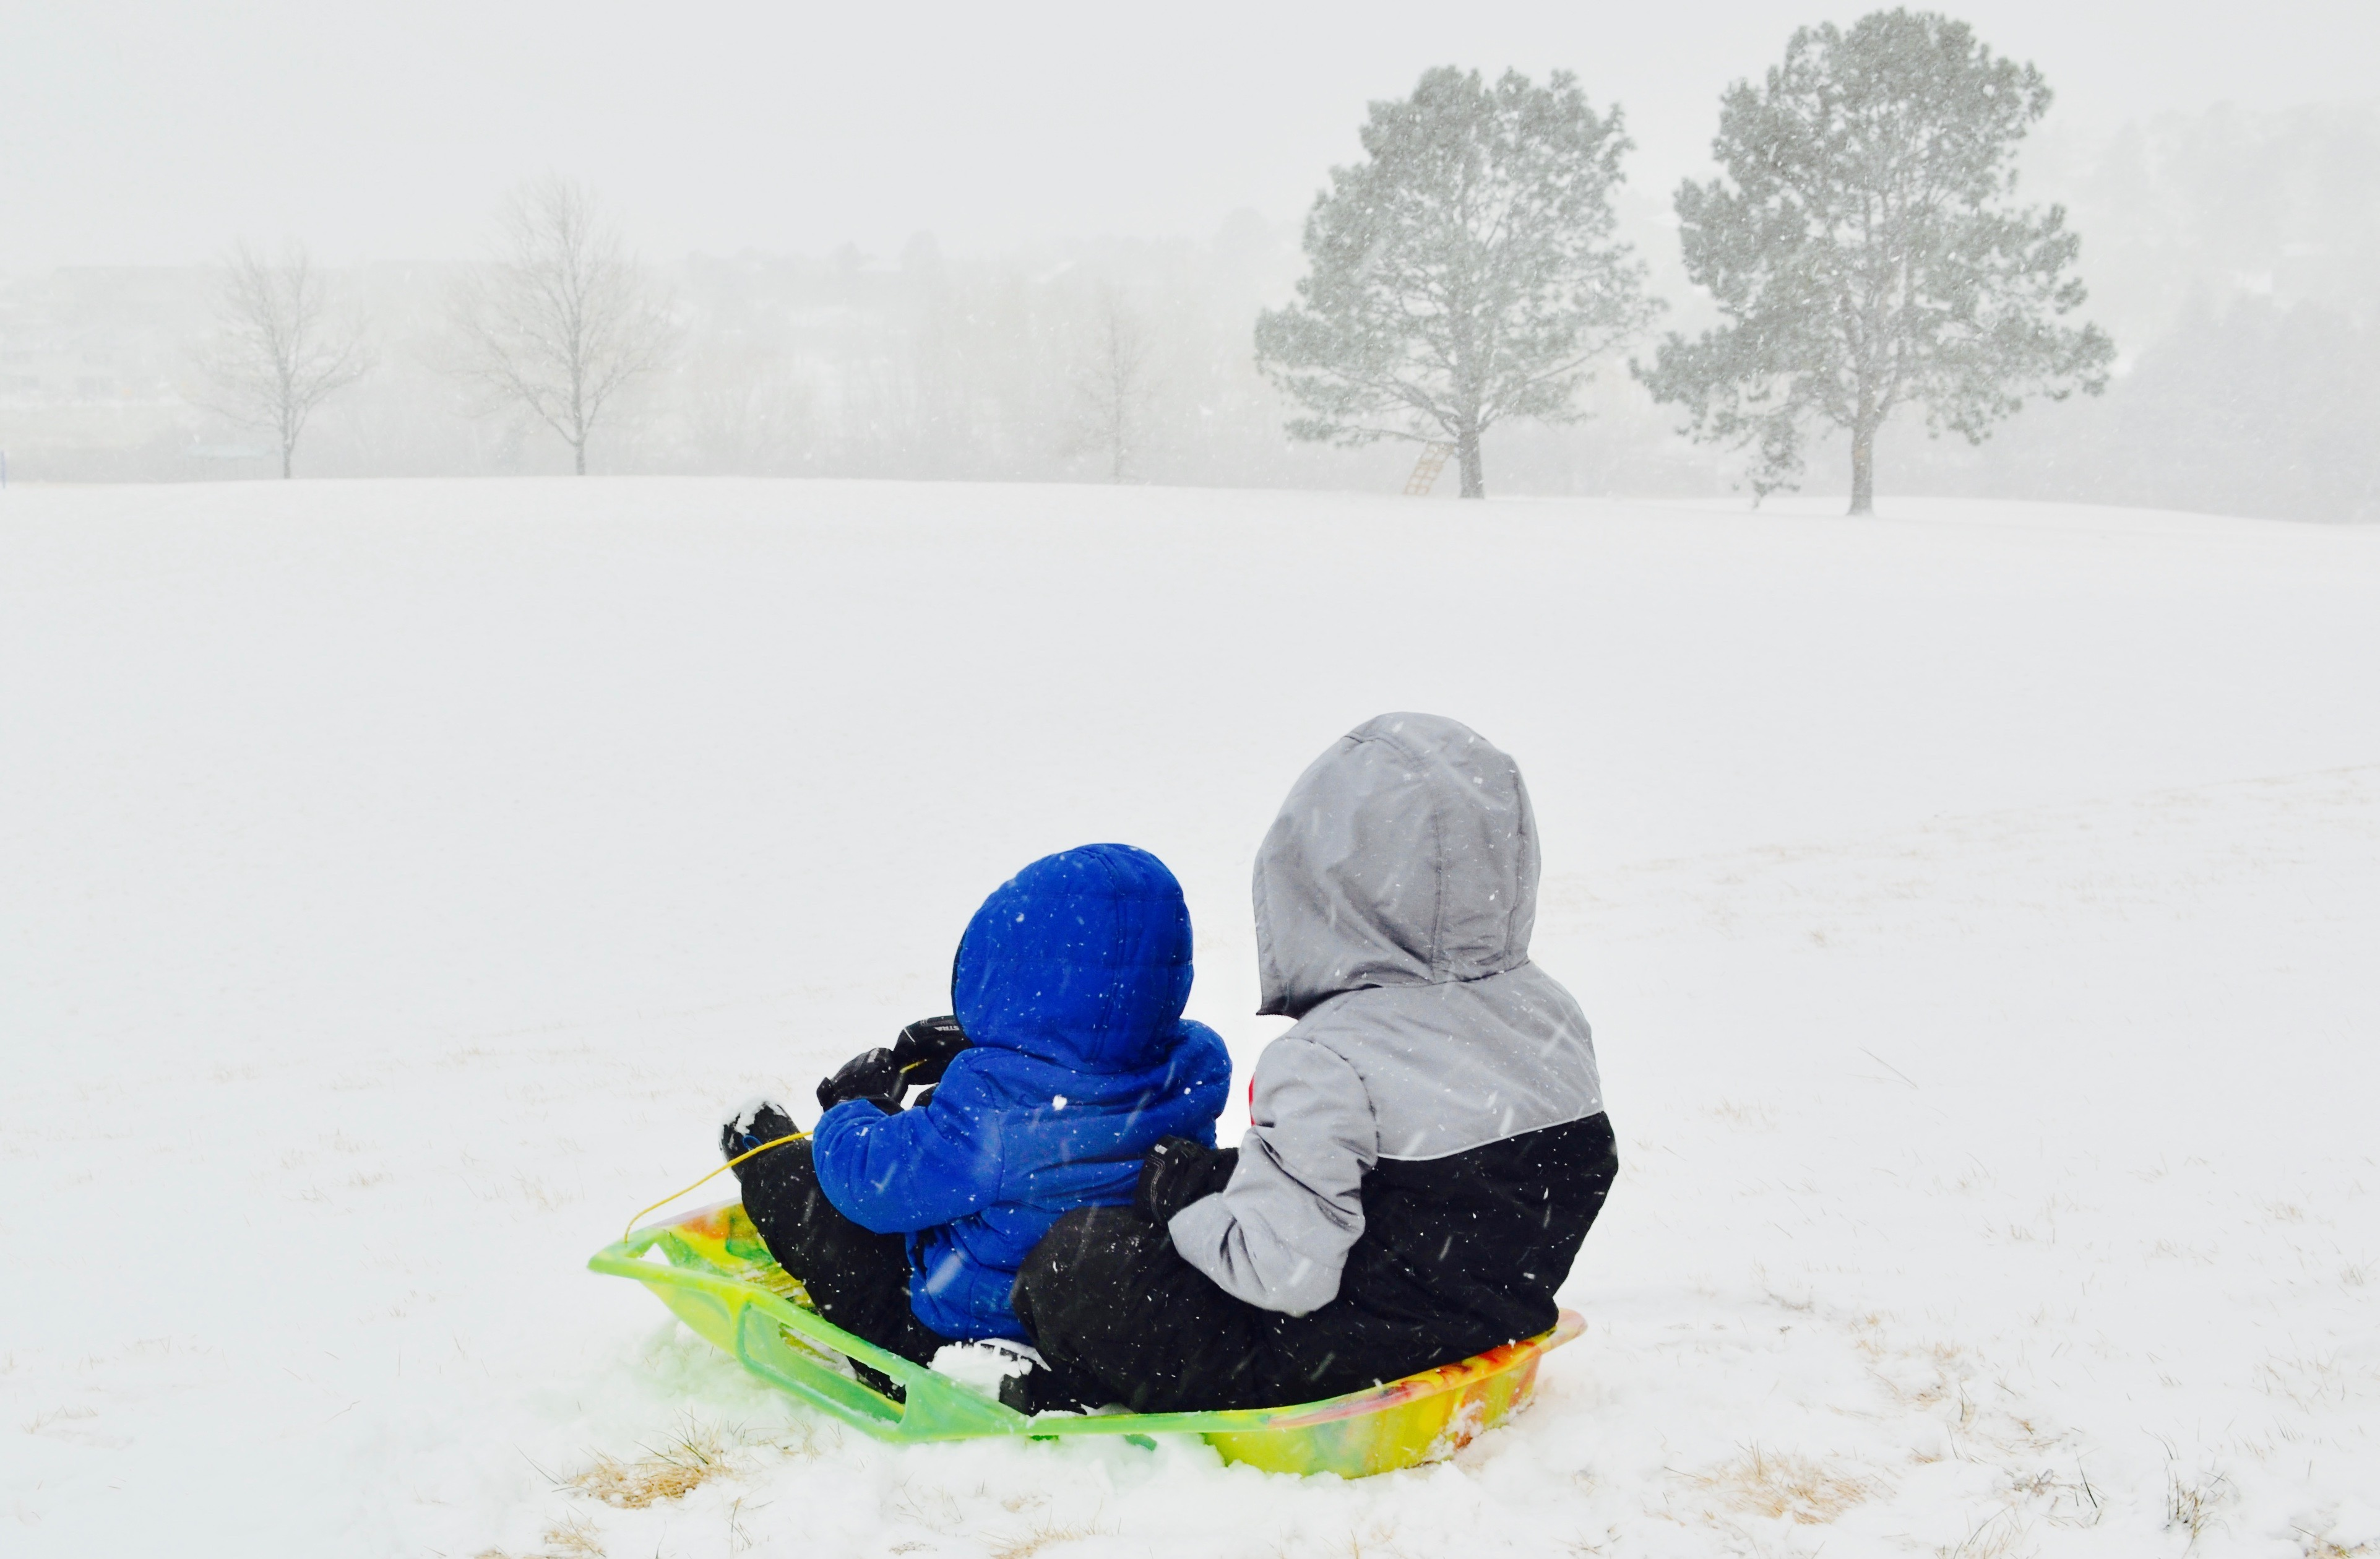 Brothers sledding down the hill during a snowstorm.